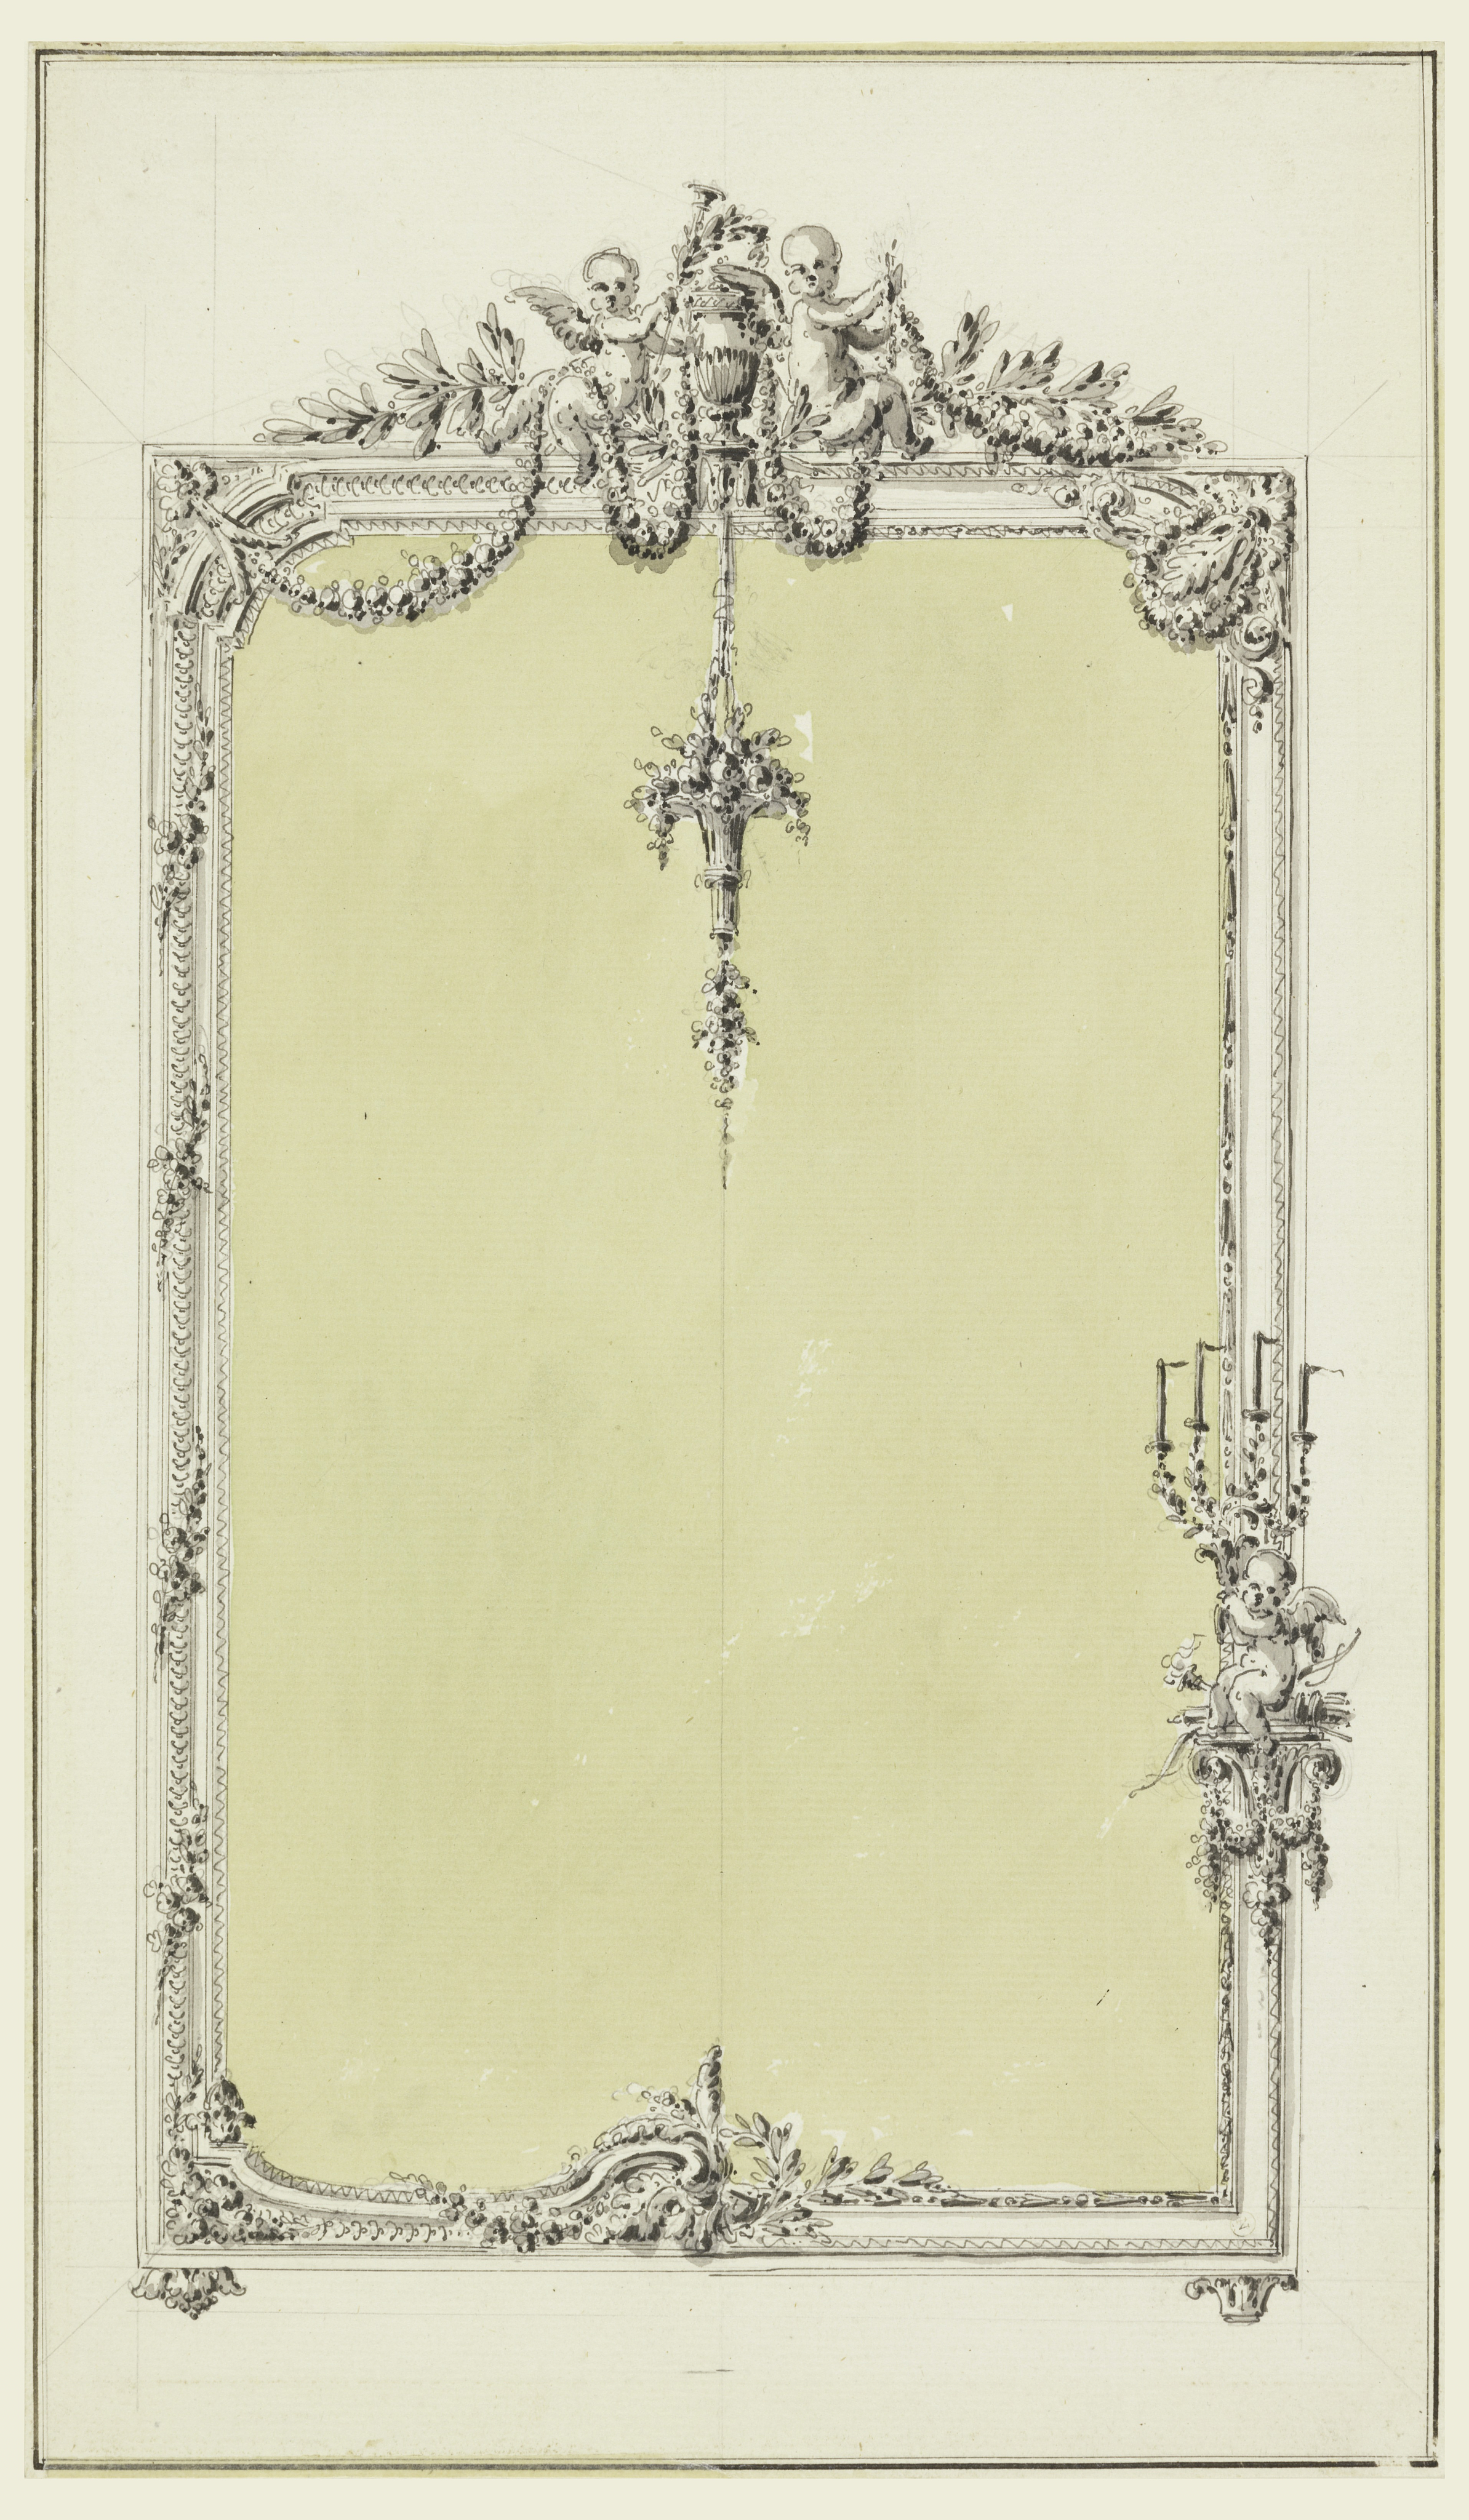 2387x4096 Mirror Frame Drawing Filedrawing, Design For A Mirror Frame,